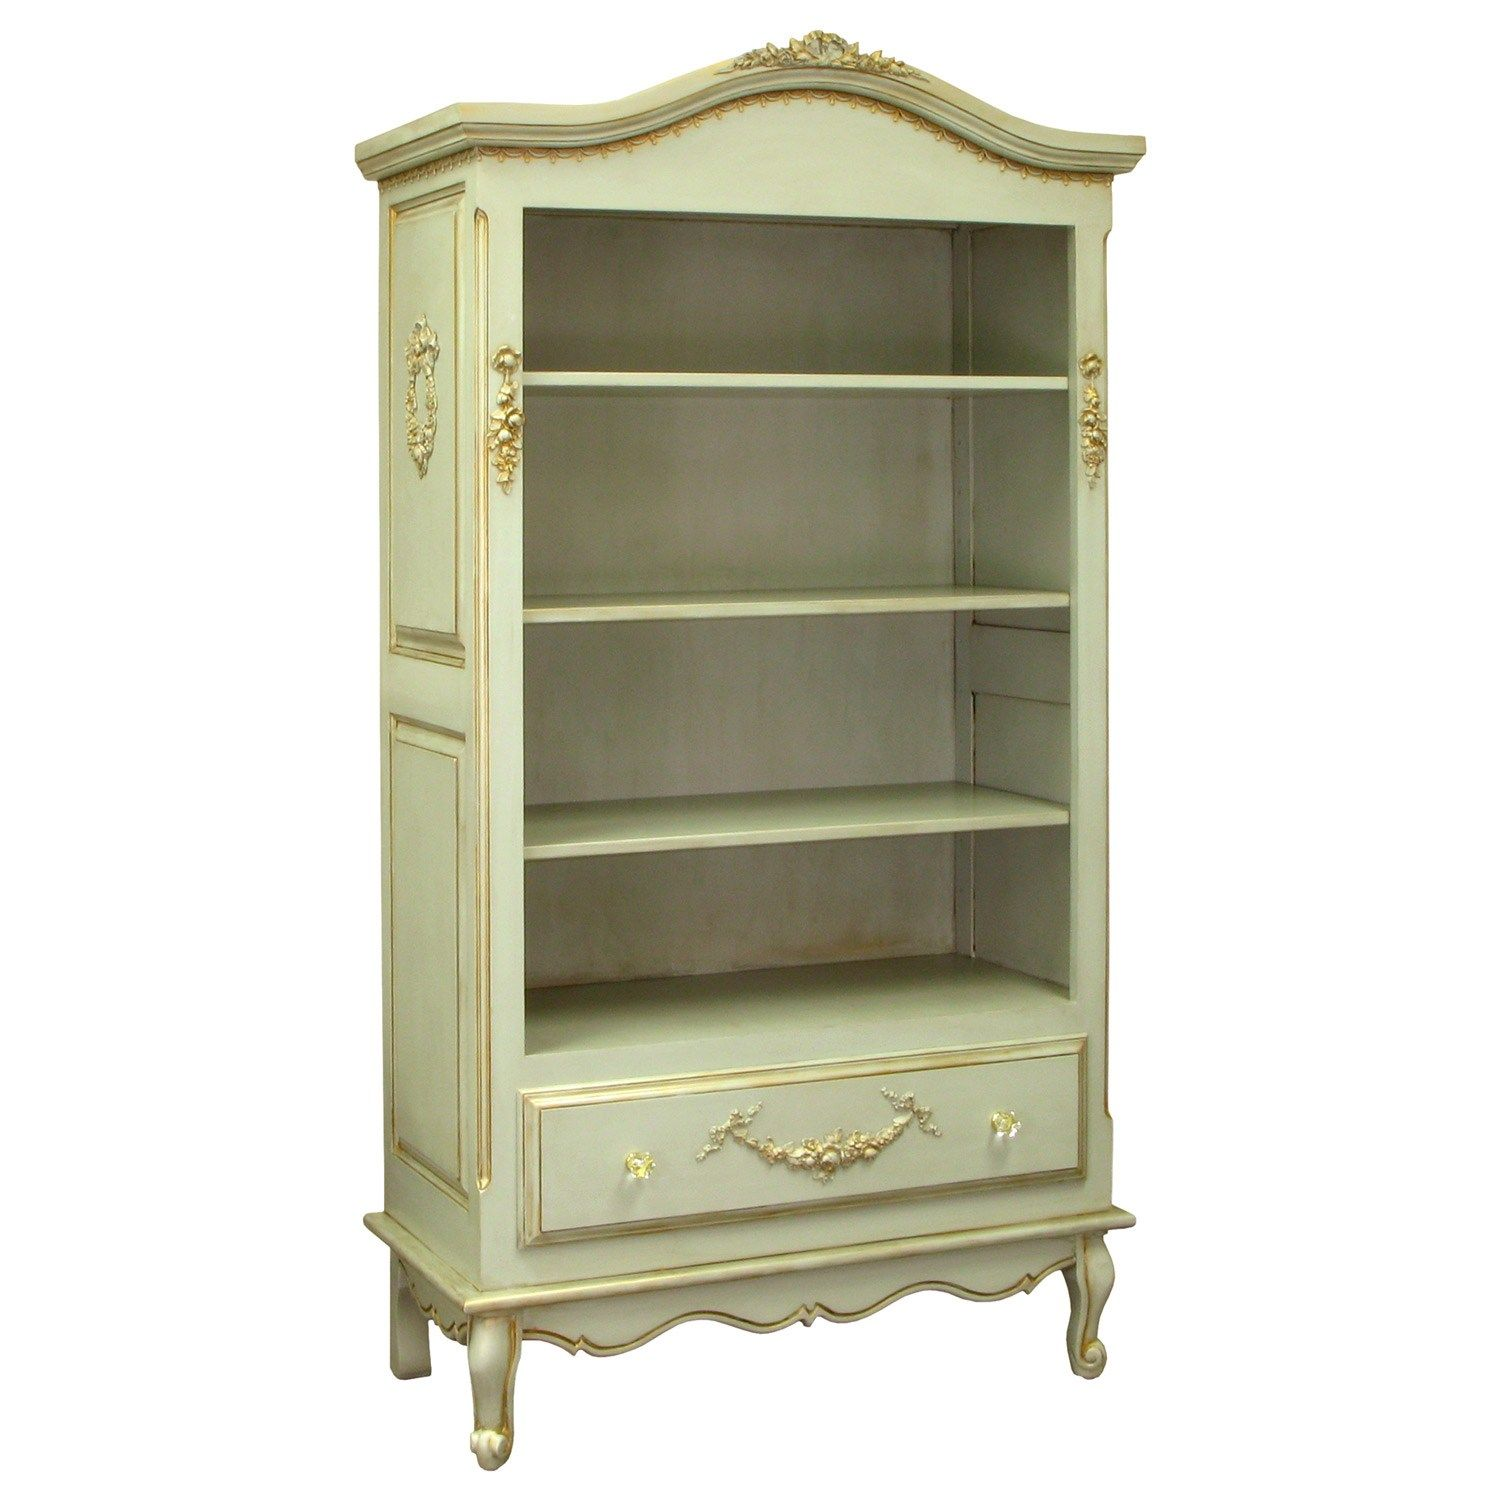 AFK French Bookcase Tall - many different finishes!